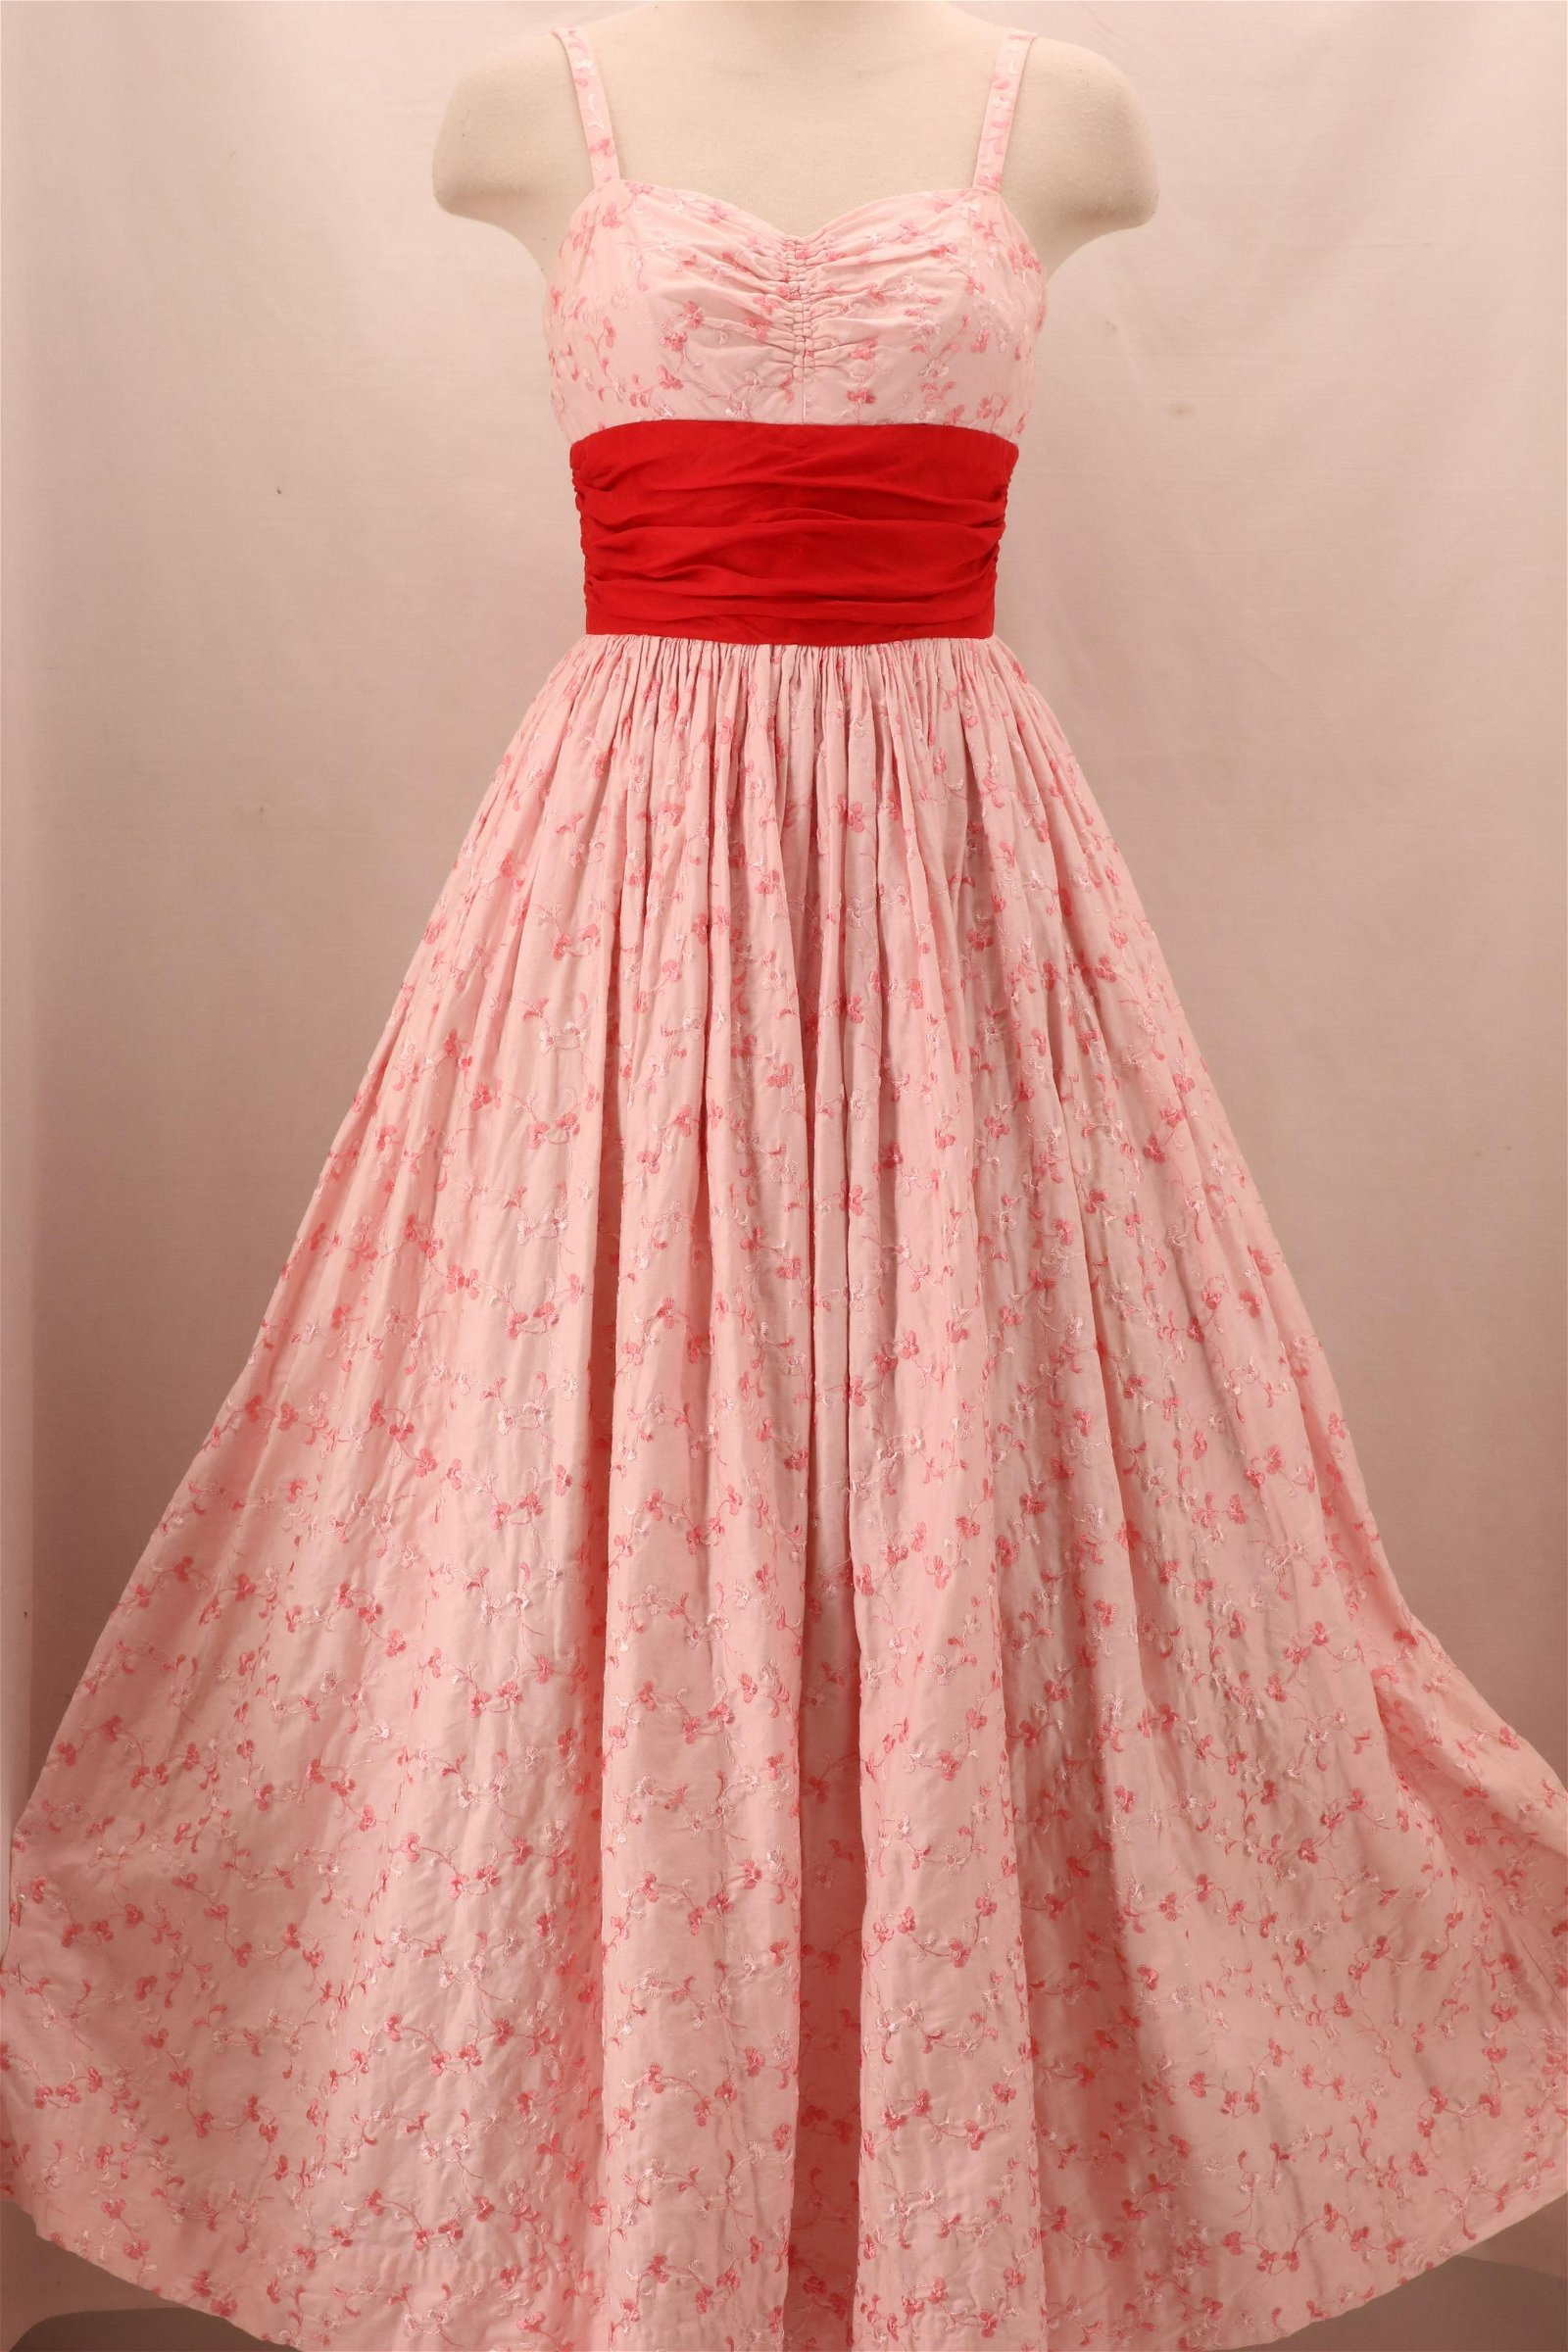 Vintage 1950's Strappy Embroidered Pink Cotton